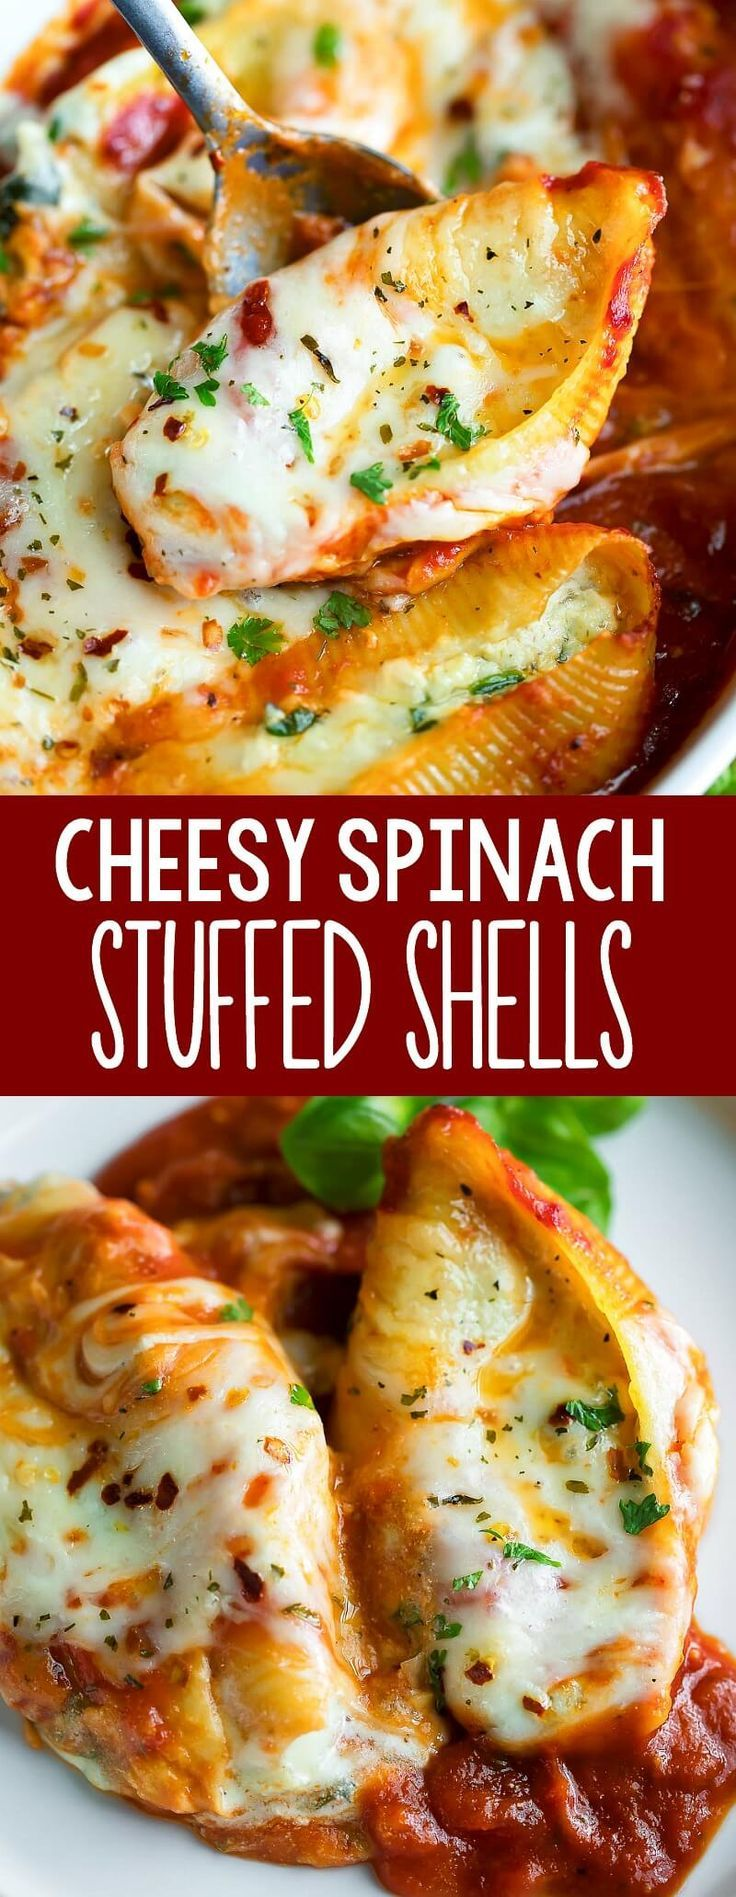 food dinner #food #foods These cheesy spinach stuffed shells are a family favorite! Rock your weeknight dinner routine by making the shells in advance. The leftovers are amazing and can be enjoyed all week long! #pasta #cheese #spinach #garlic #vegetarian #freezerfriendly #mealprep #makeahead #casserole